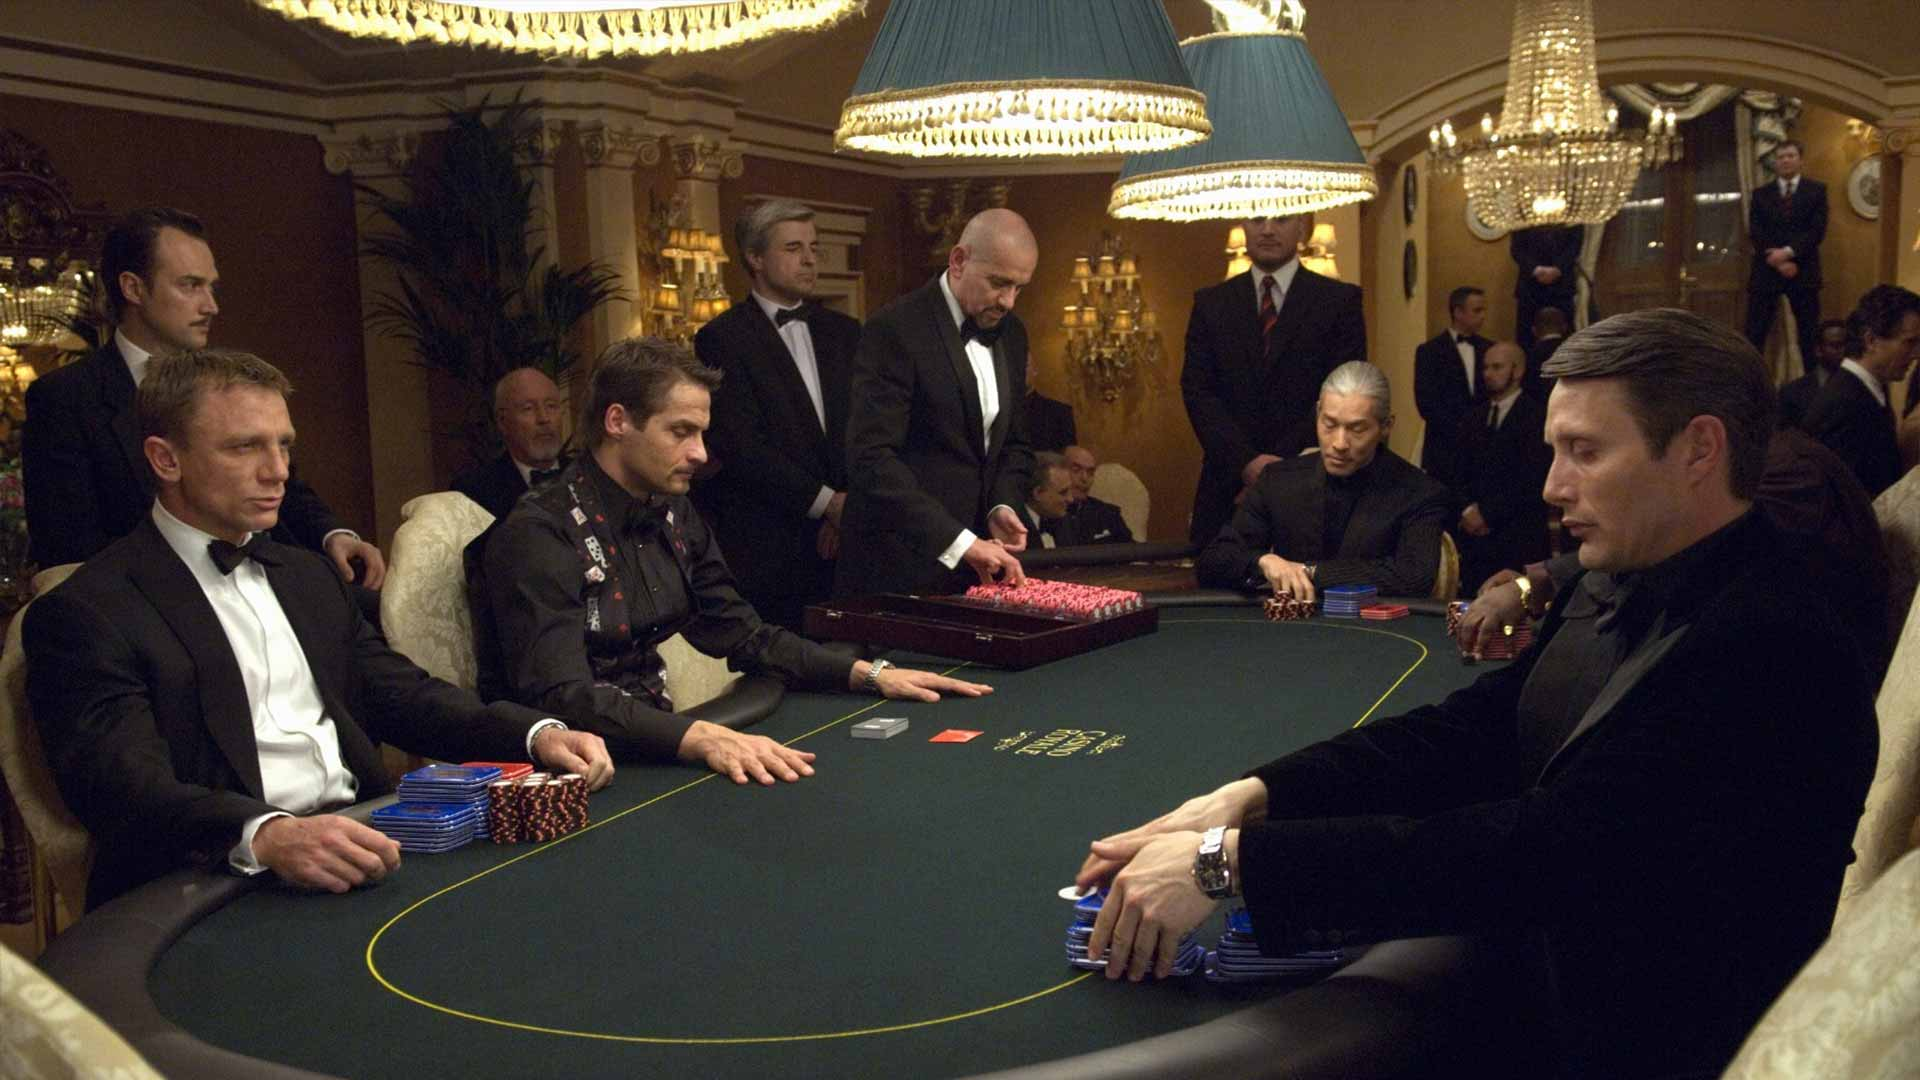 'Casino Royale' director reveals the secret to filming James Bond playing poker